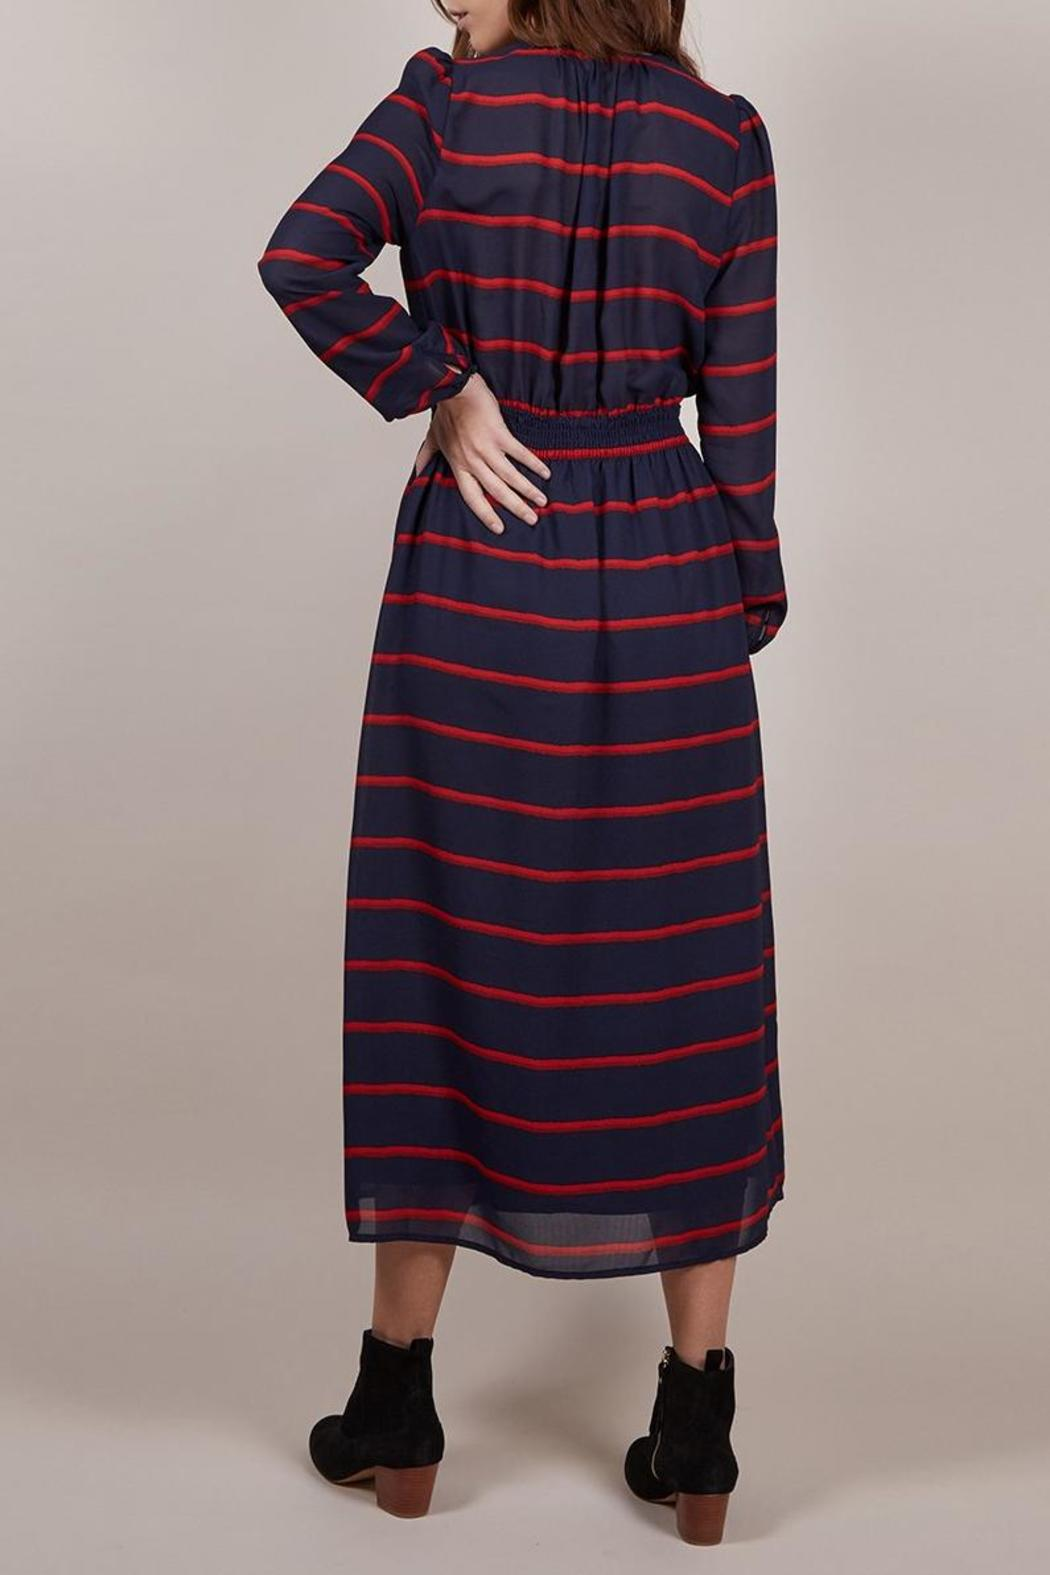 FRNCH Amaryllis Striped Dress - Front Full Image